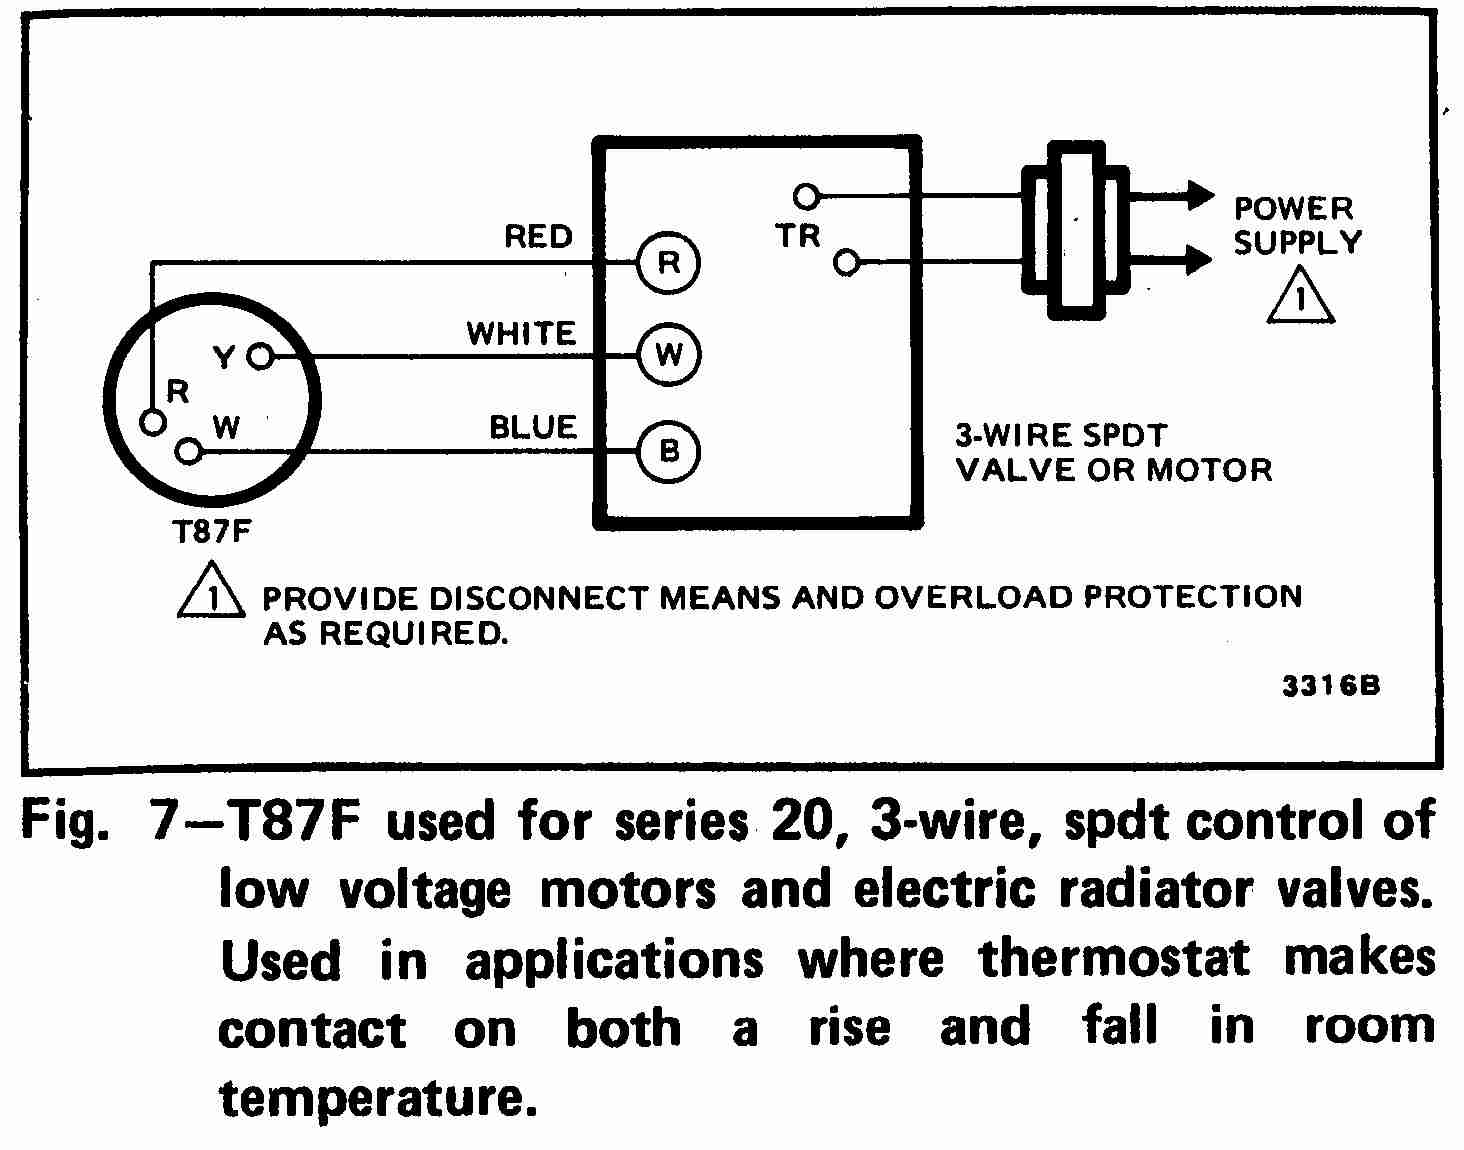 mechanical relay wiring with 3 Wire Zone Valve Wiring Diagram Heat Only Thermostat With Honeywell on Symbols furthermore Electrical Wiring Diagram Of Dodge D100 D600 And W100 W500 further Power Factor Wound Rotor Induction Motor likewise 36 moreover Msd Rpm Activated Switch Wiring Diagram.